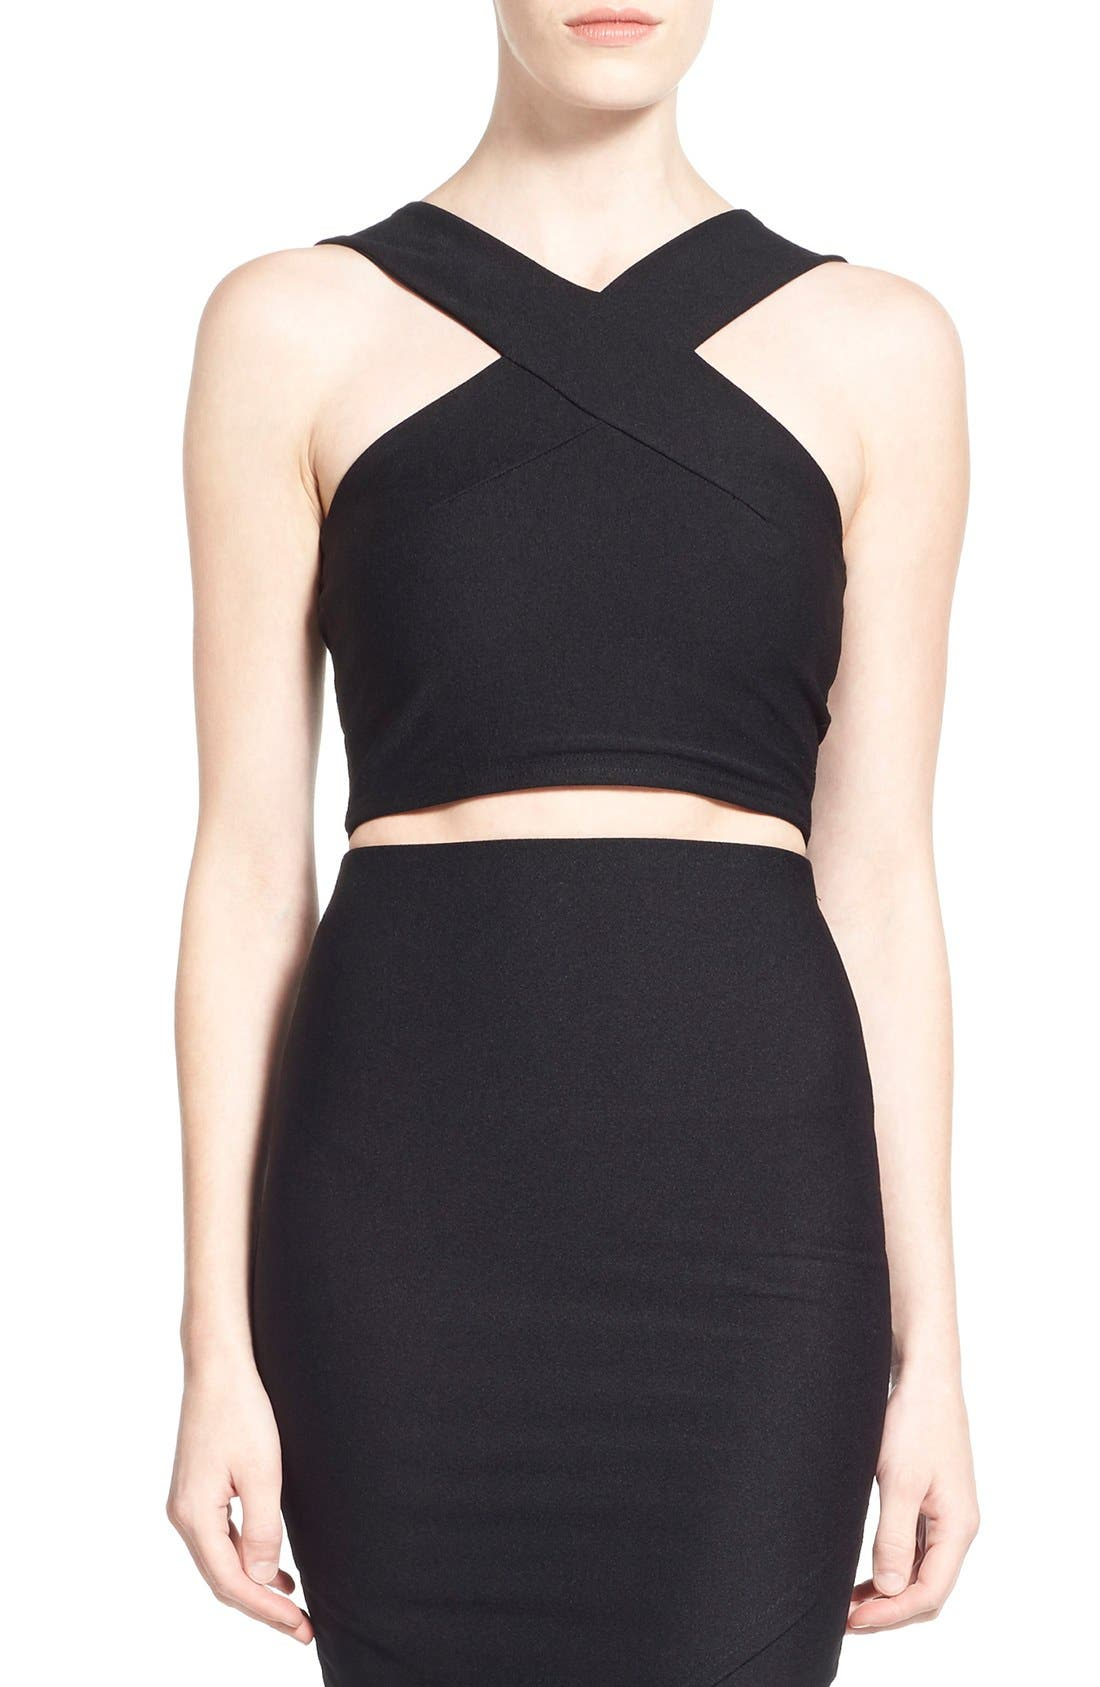 Alternate Image 1 Selected - Missguided Cross Strap Crop Top